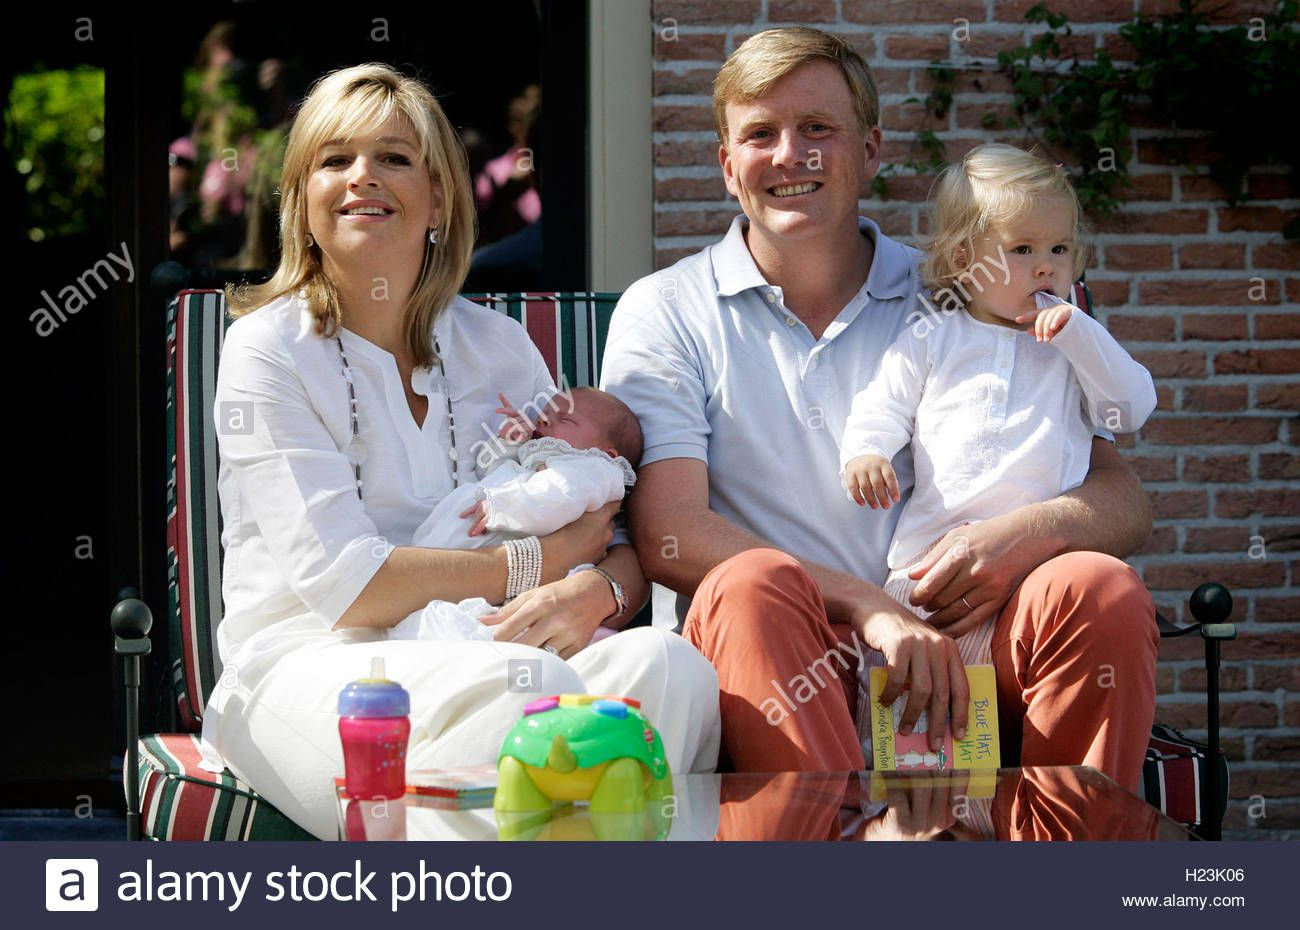 princess-maxima-and-prince-willem-alexander-and-their-daughters-pose-H23K06.jpg (1300×930)